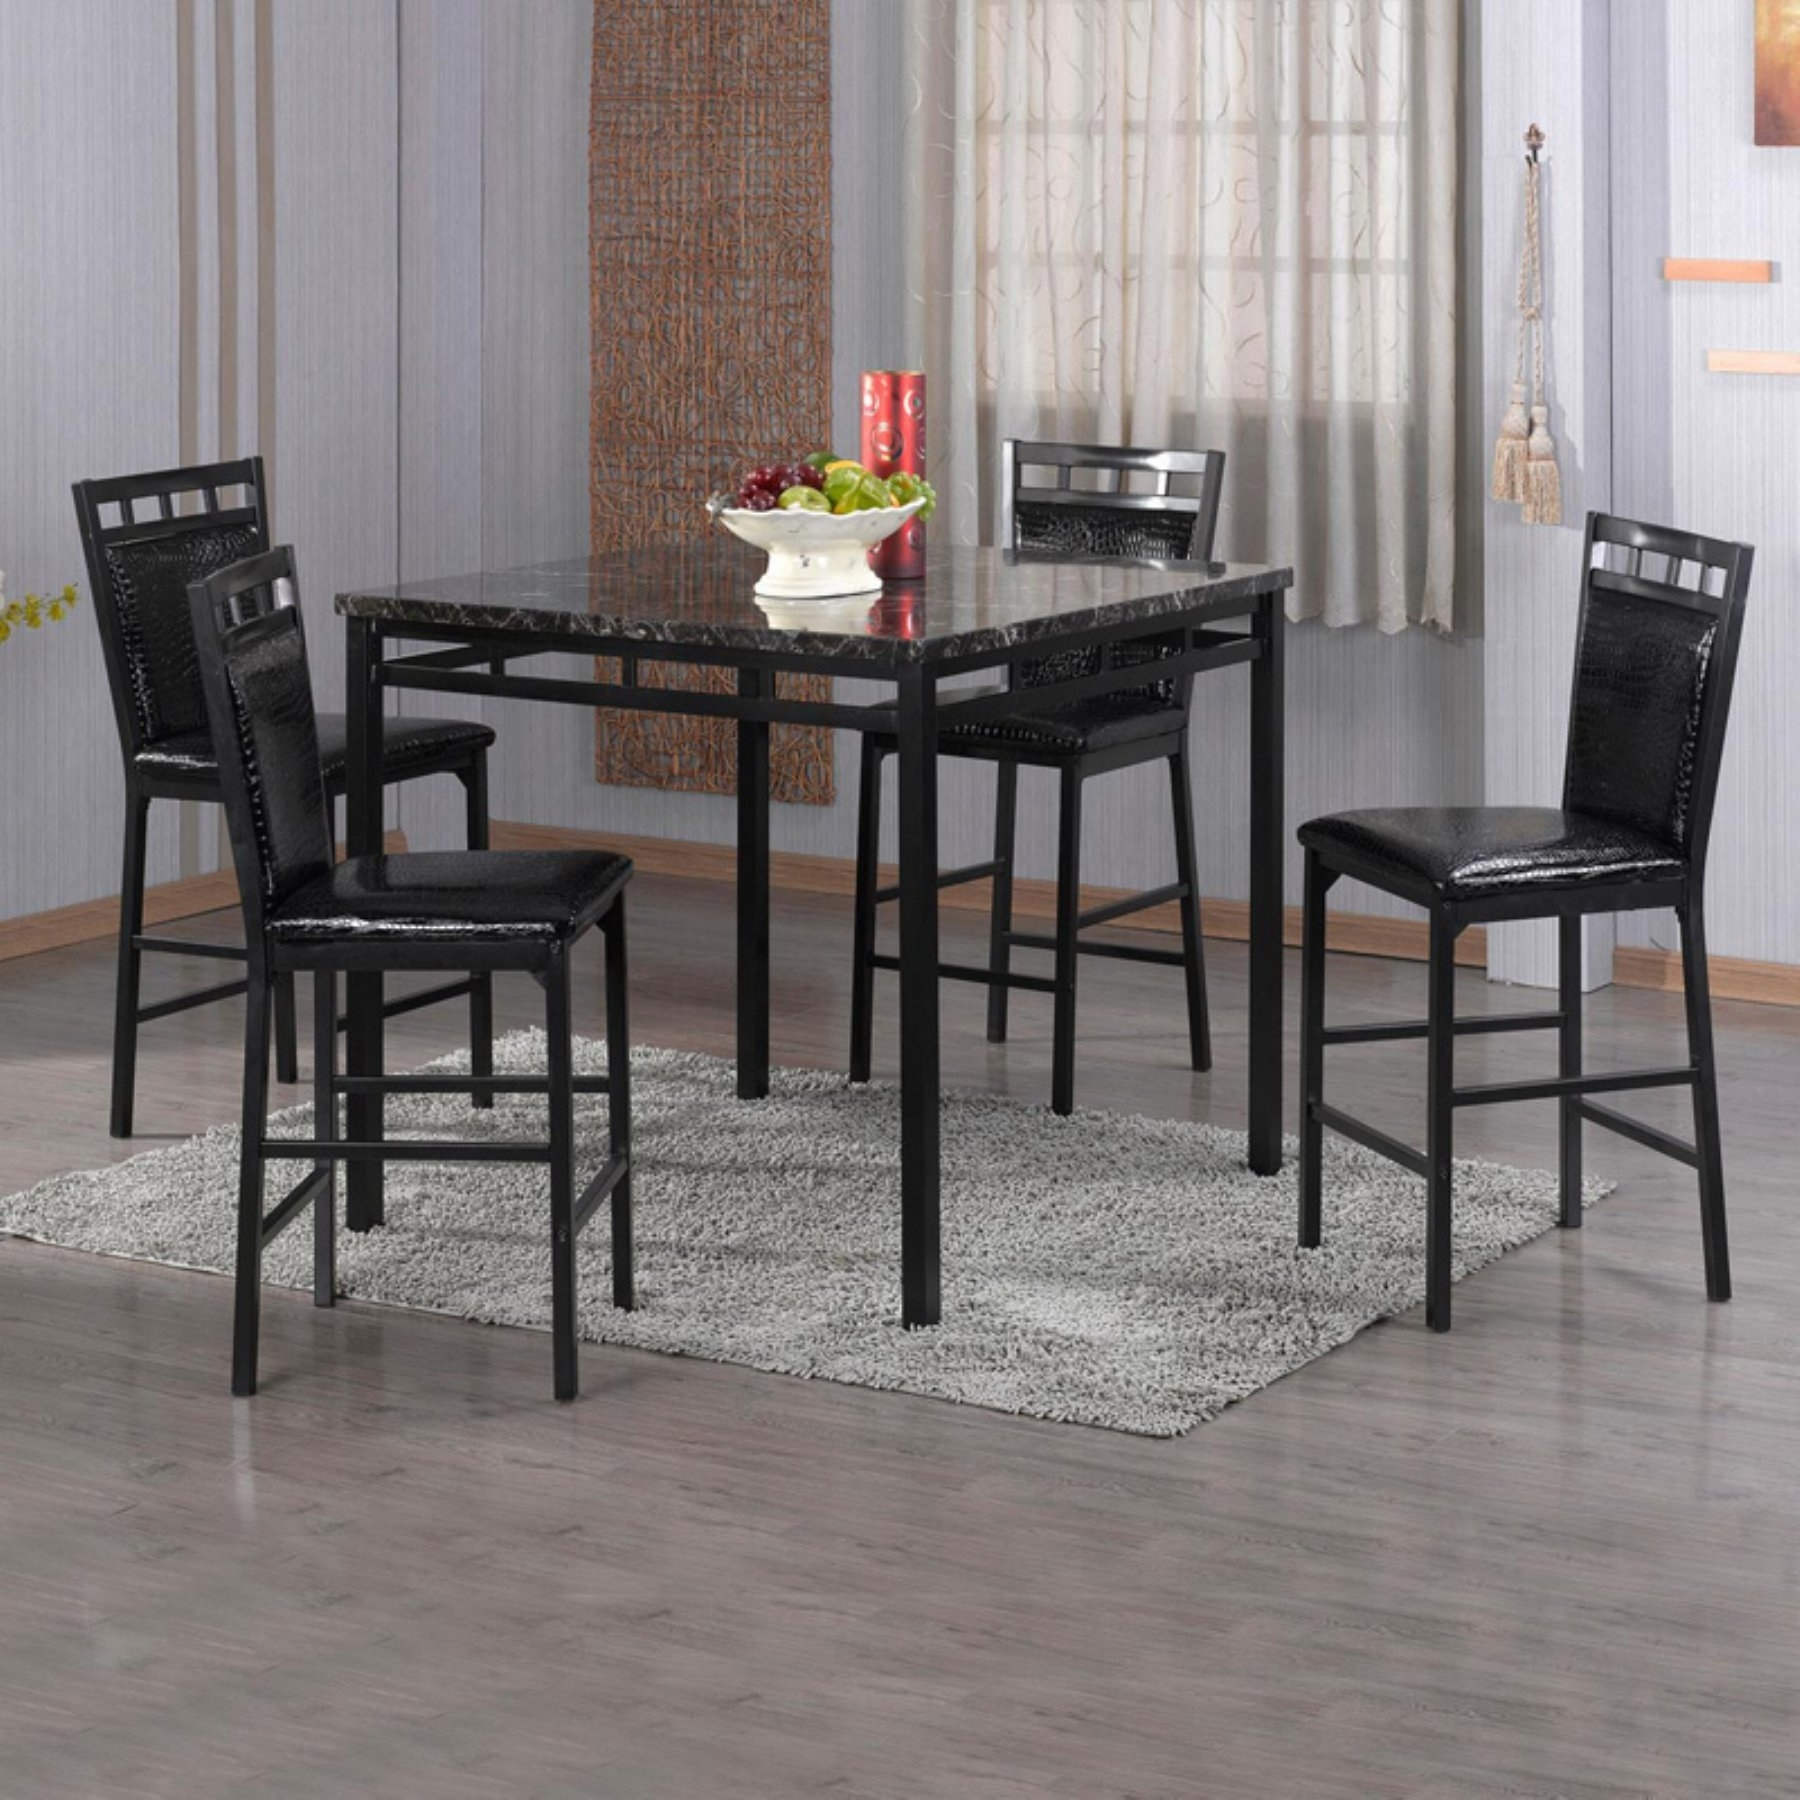 Home Source Industries 5 Piece Counter Height Dining Table Set In Within Most Recently Released Valencia 3 Piece Counter Sets With Bench (View 10 of 20)